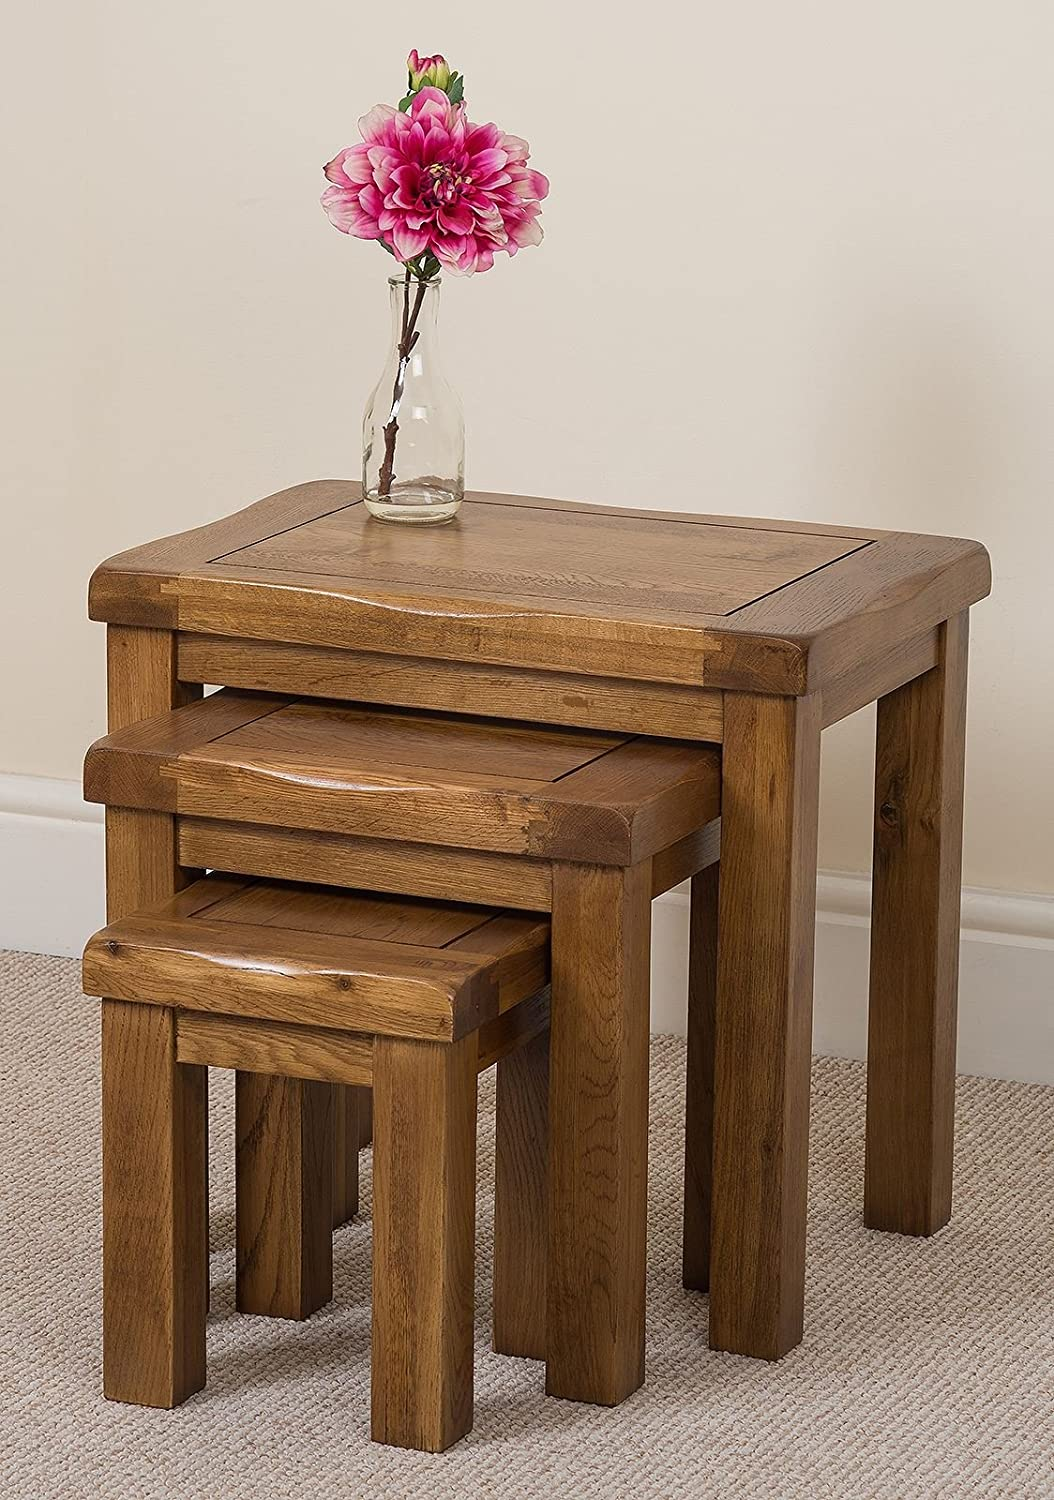 Cotswold Rustic Solid Oak Nest Of Tables Living Room Furniture, (36 X 59 X  49 Cm): Amazon.co.uk: Kitchen U0026 Home Part 45